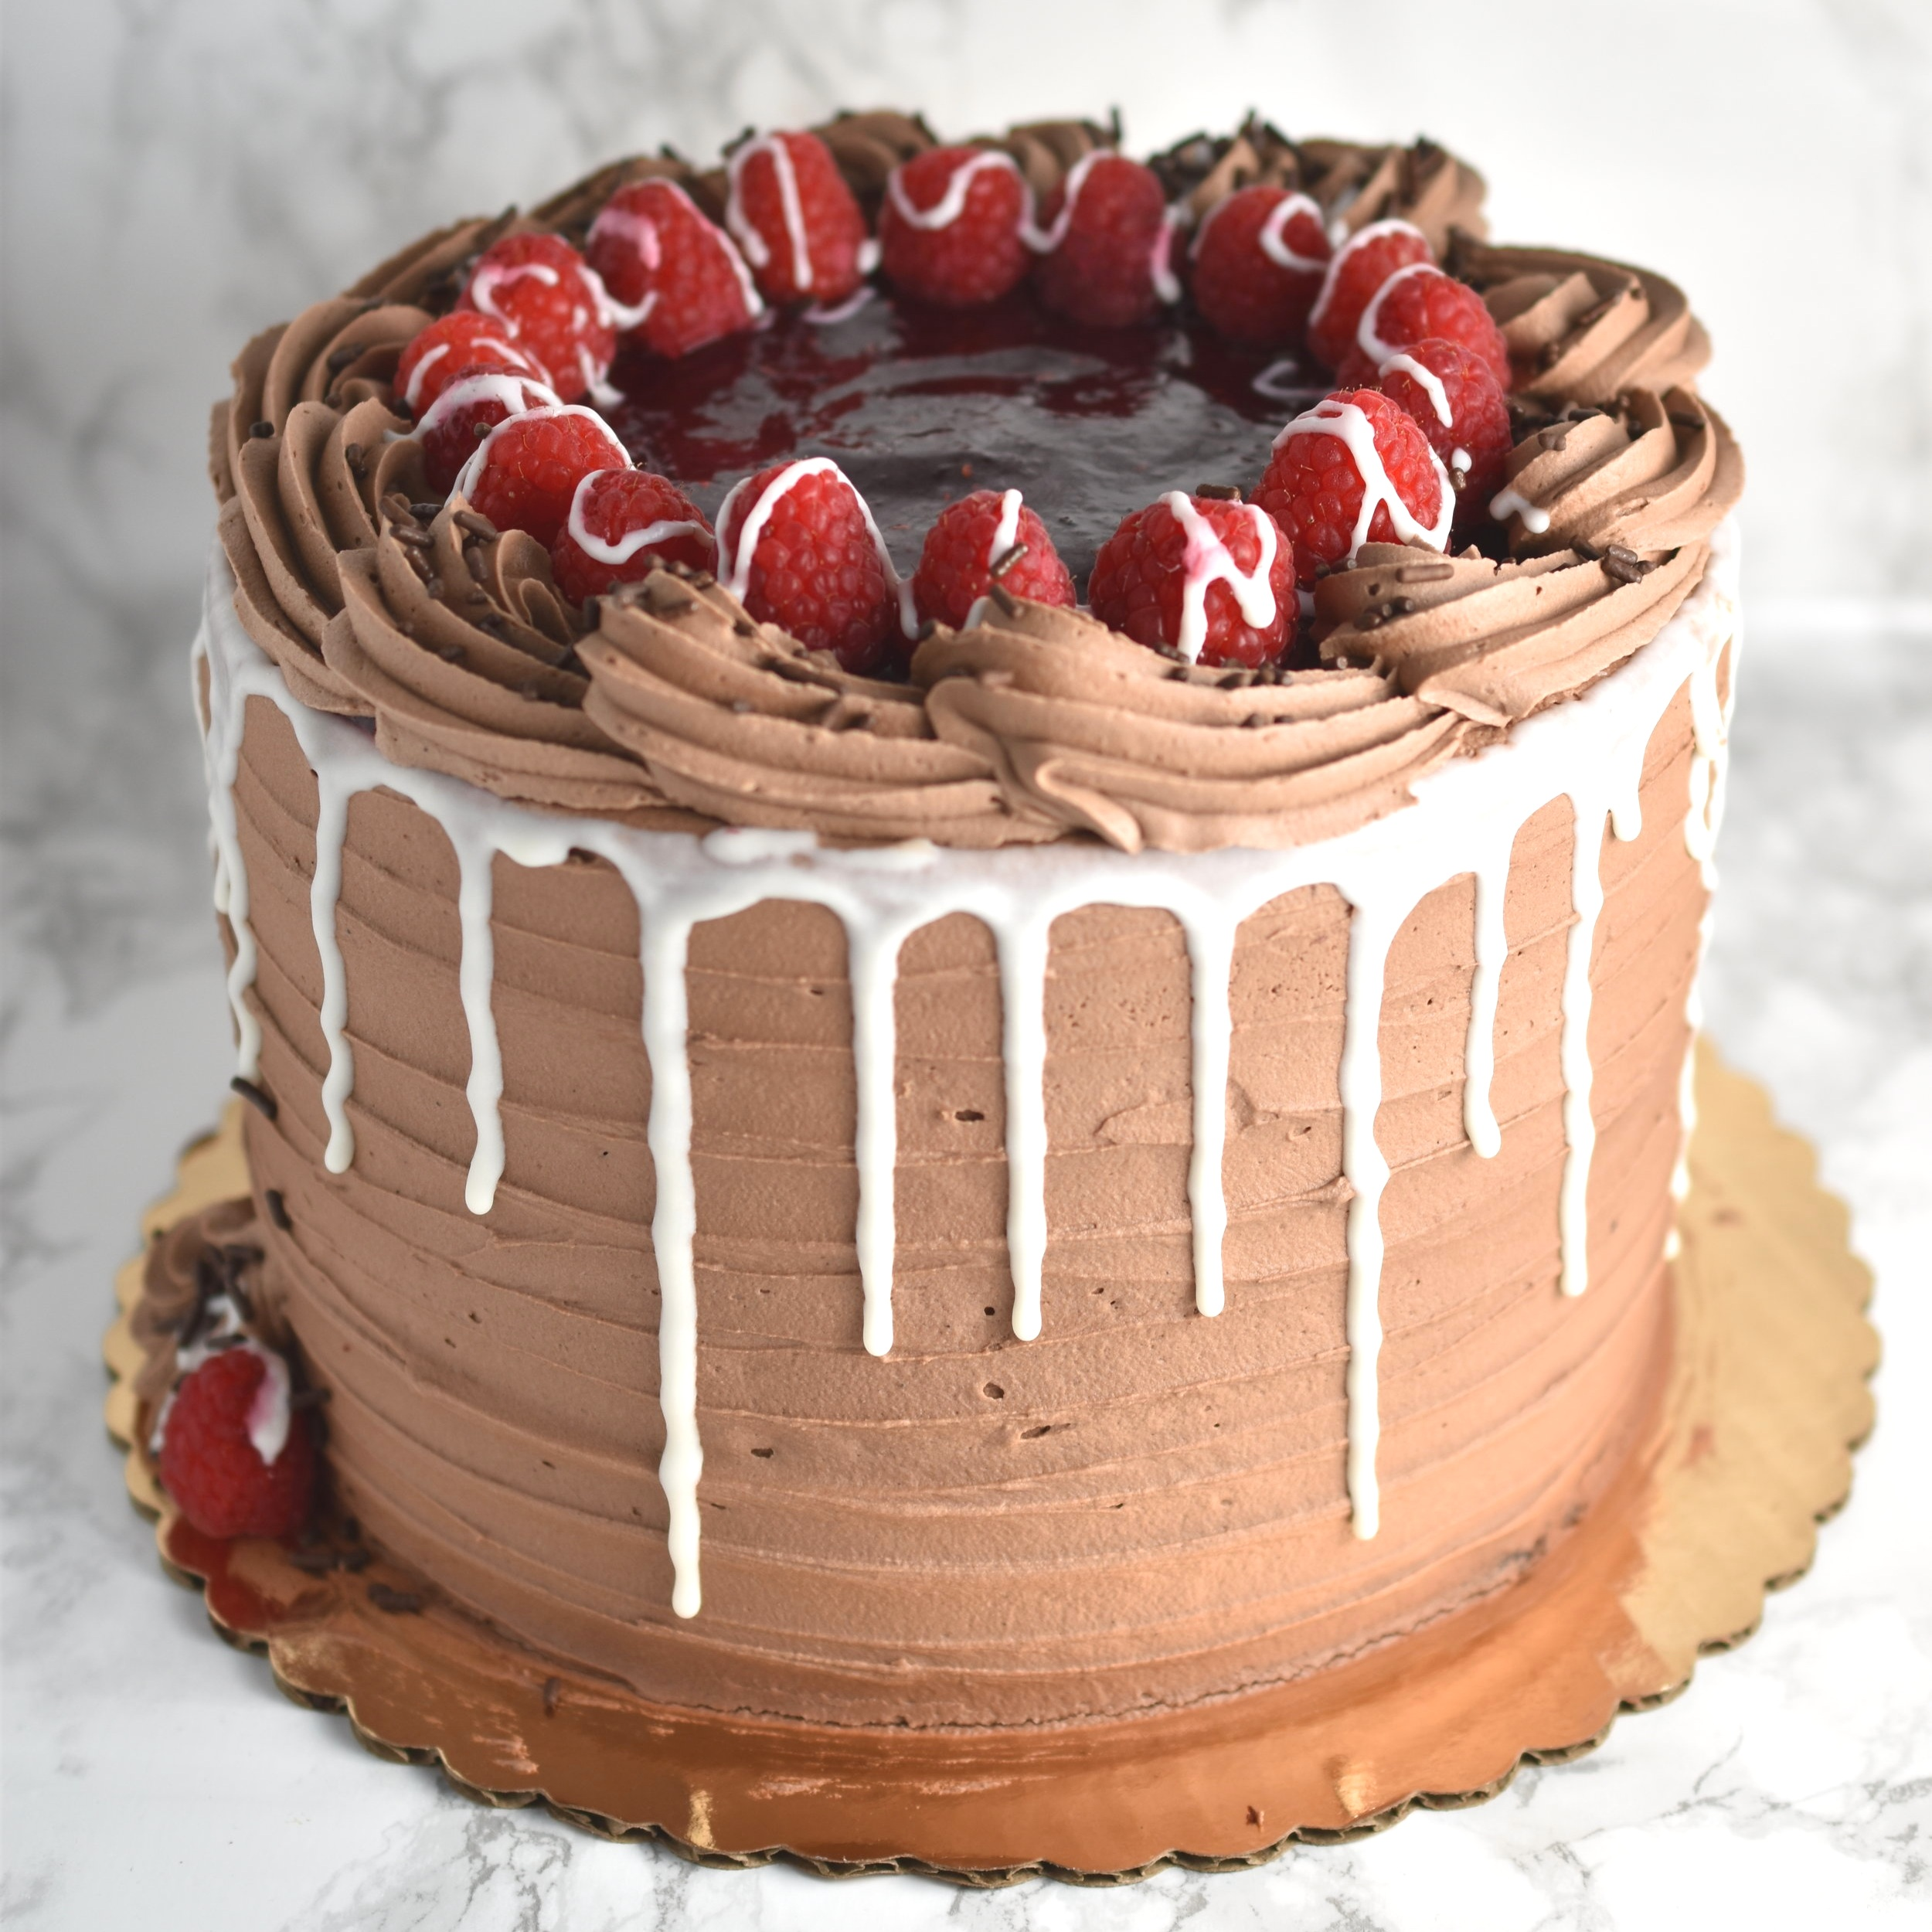 Chocolate Raspberry  - Chocolate cake, Raspberry filling, chocolate frosting, and ganache..